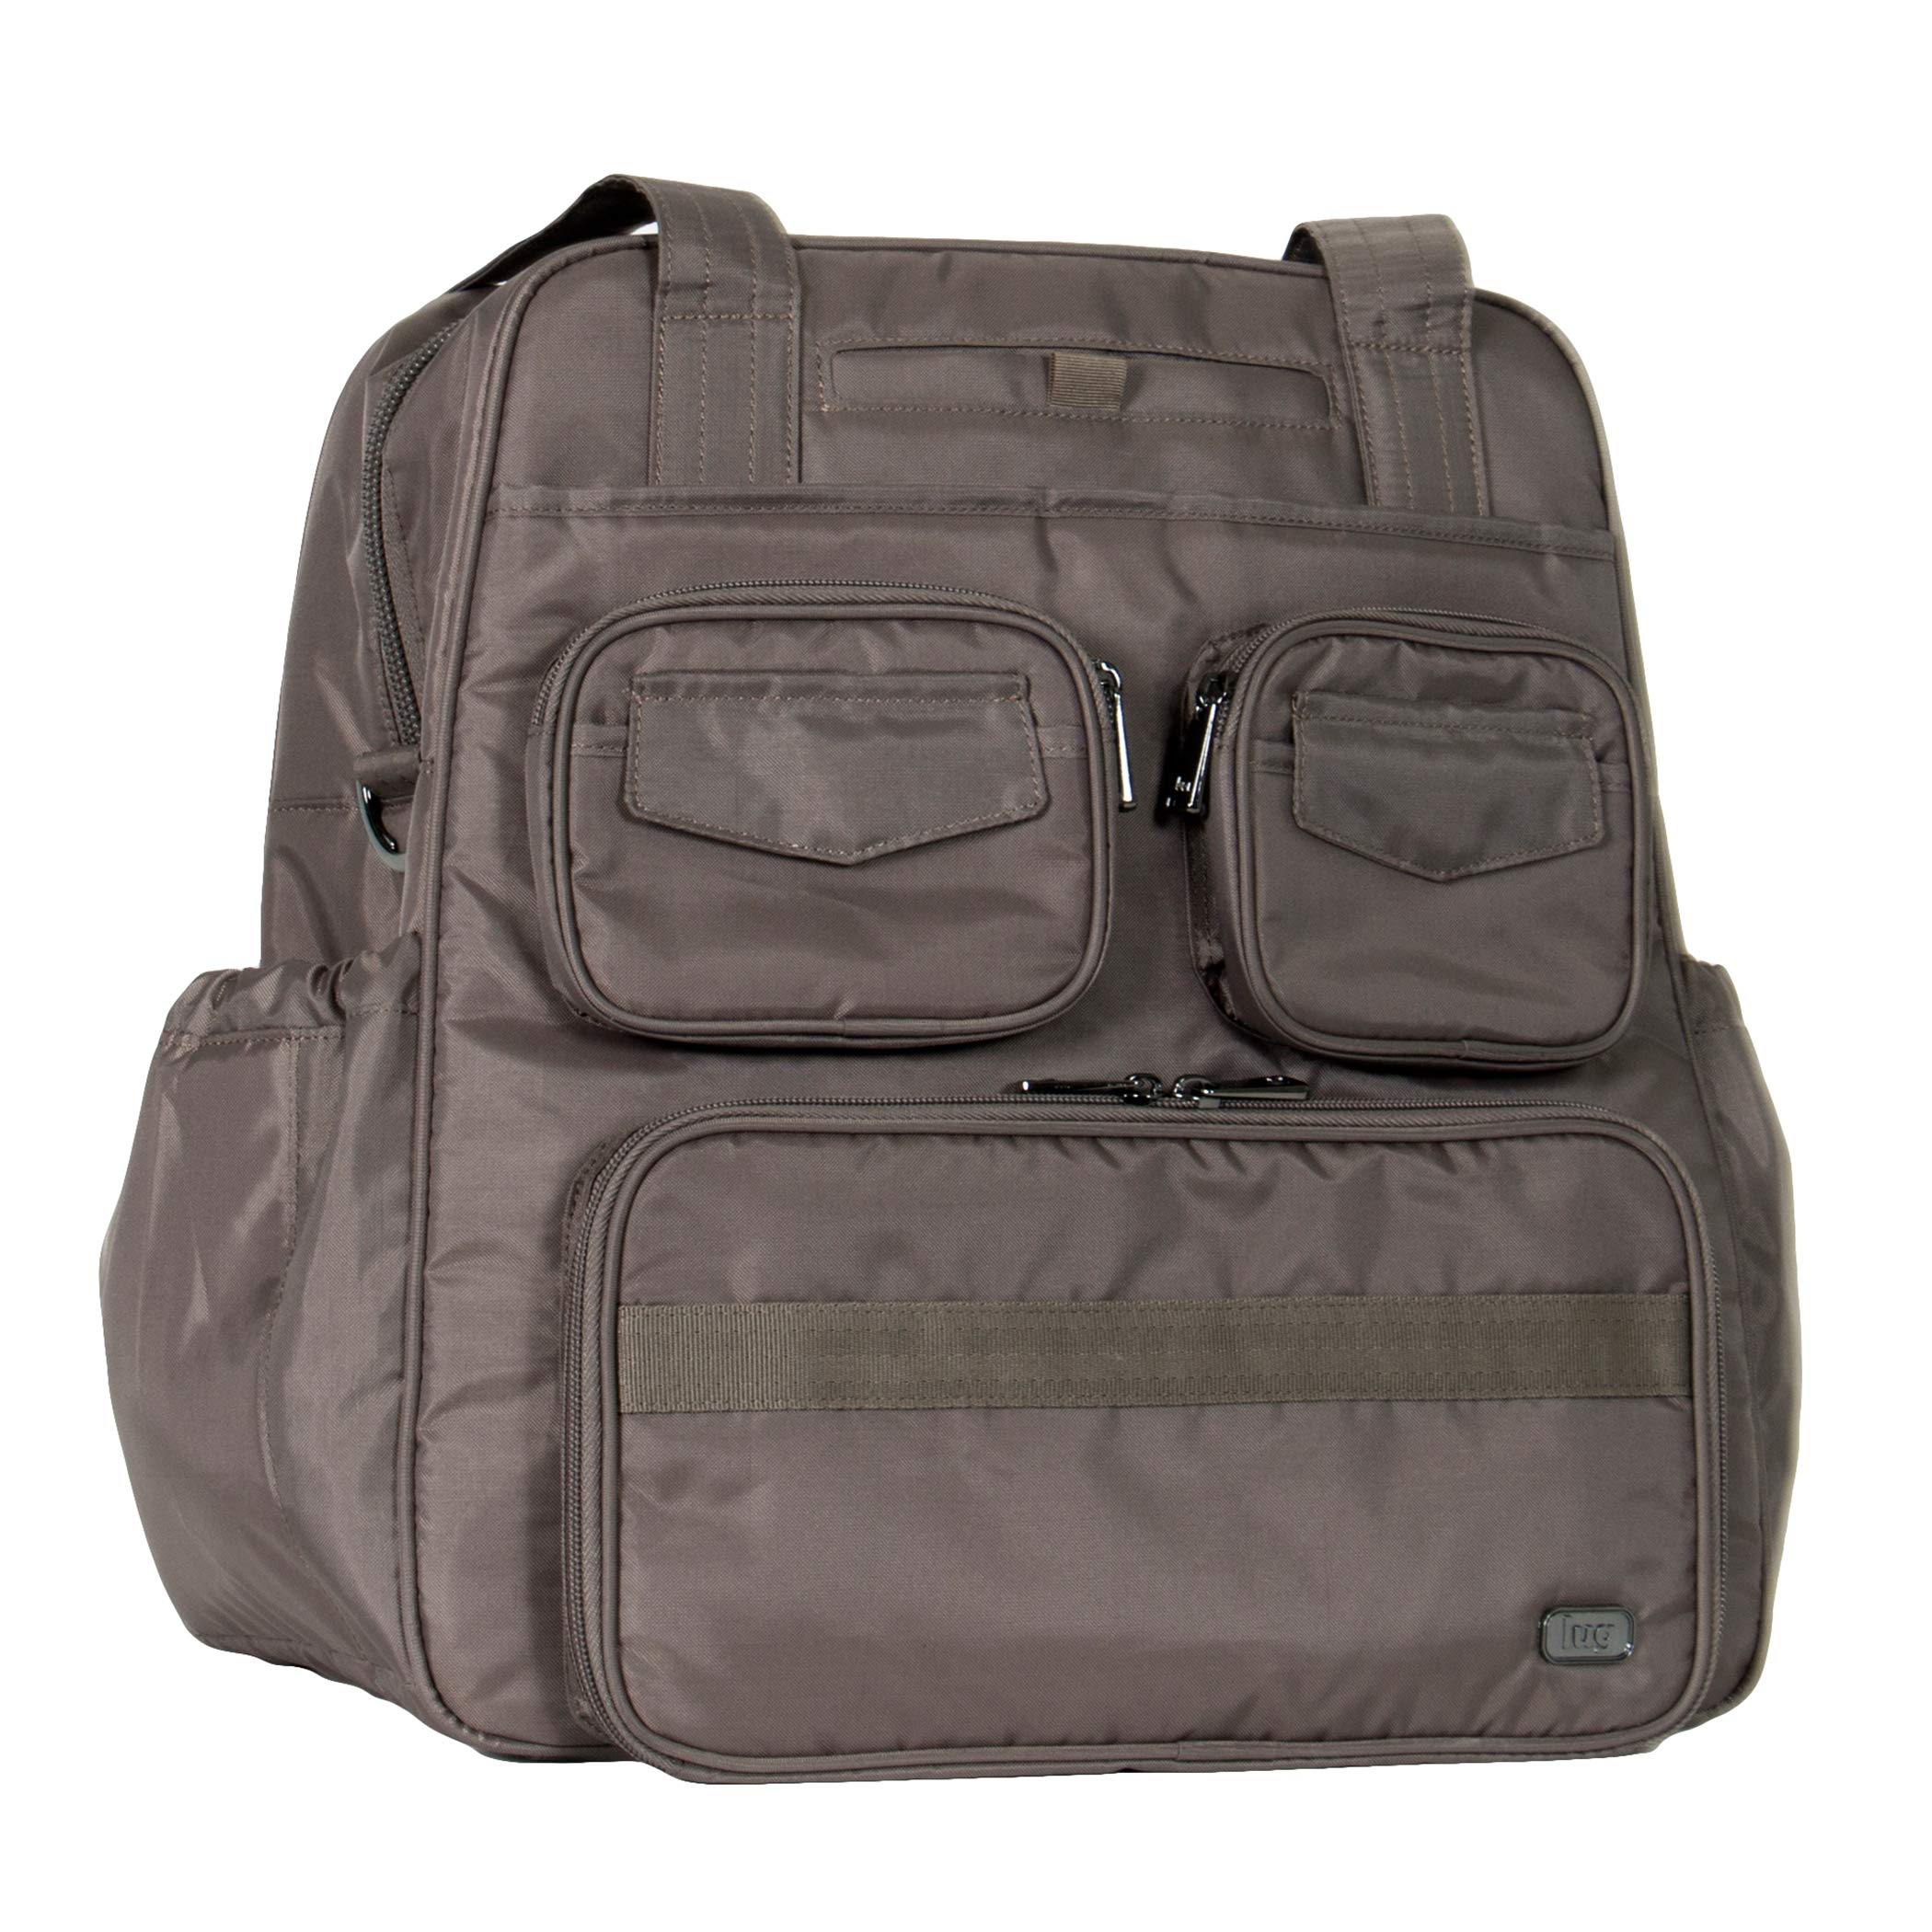 Lug Women's Puddle Jumper Overnight/Gym Bag (Infinity), Walnut Brown, One Size